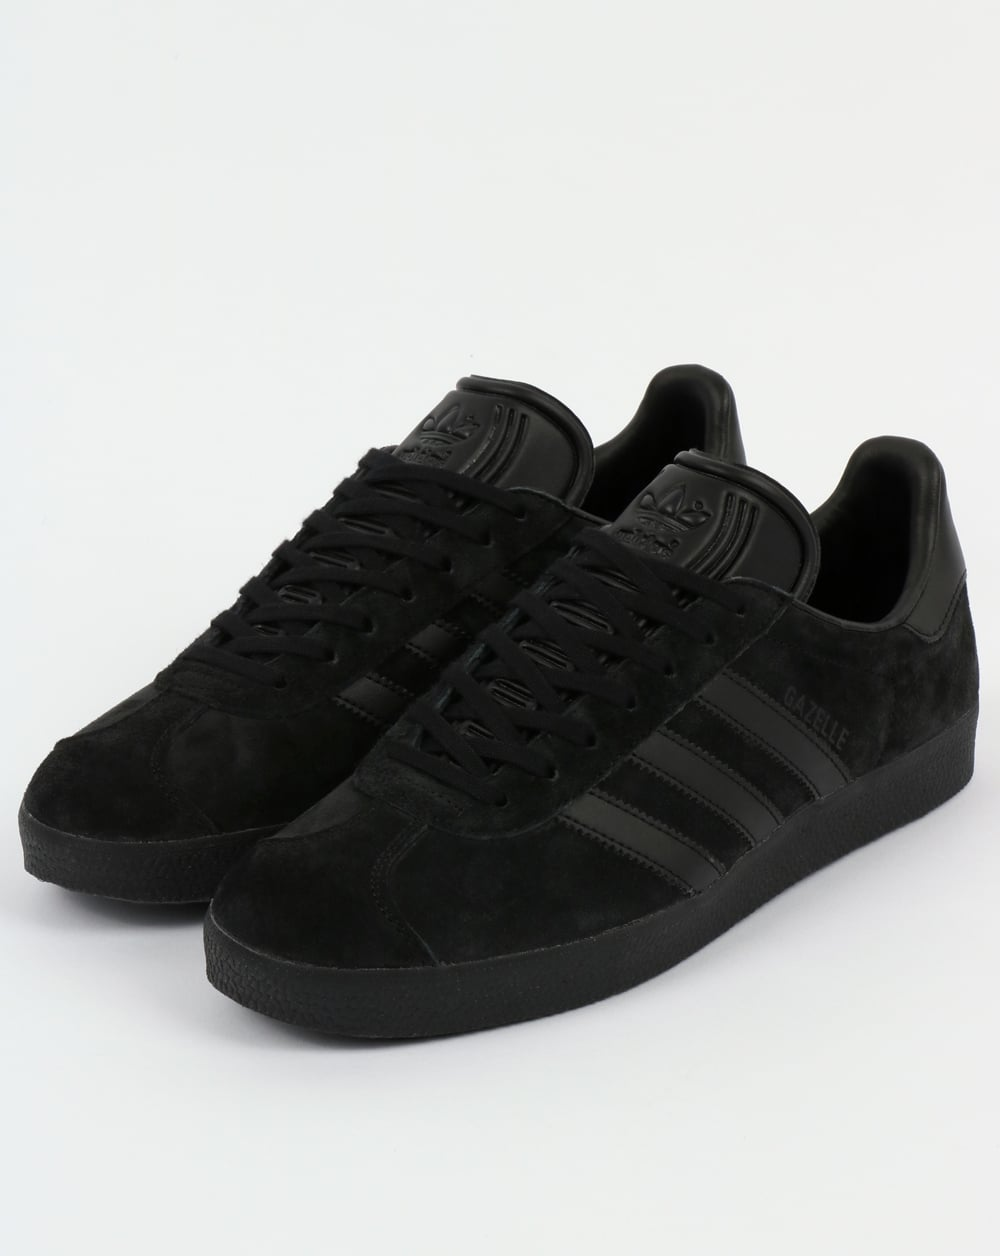 Men S Adidas Gazelle Leather Casual Shoes